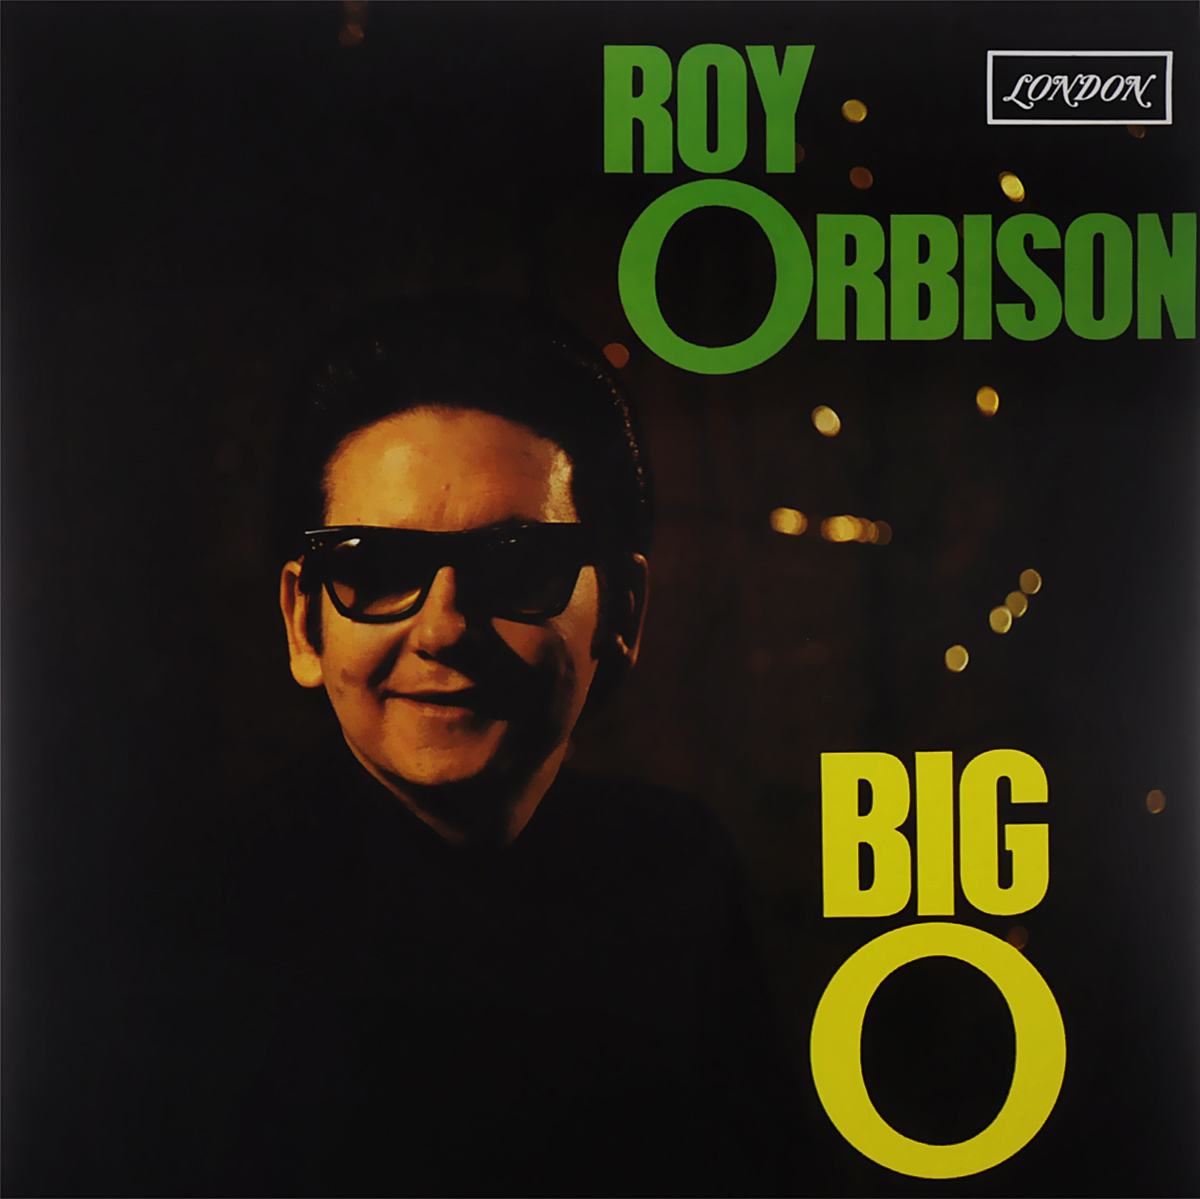 Рой Орбисон Roy Orbison. Big O (LP) рой орбисон хэнк уильямс старший roy orbison the mgm years 13 cd